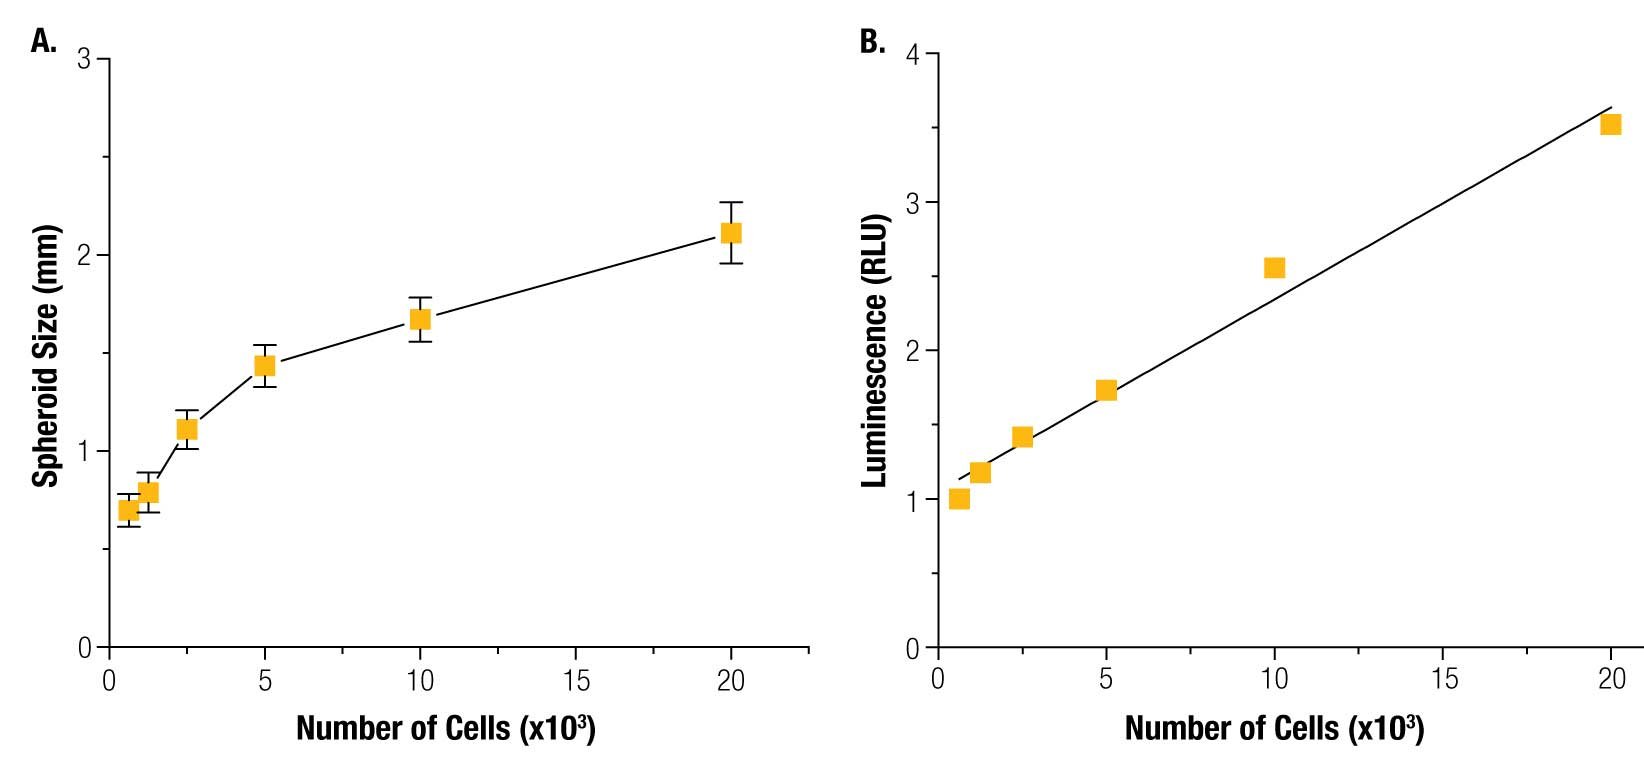 Spheroid size and viability measured by the CellTiter-Glo® assay